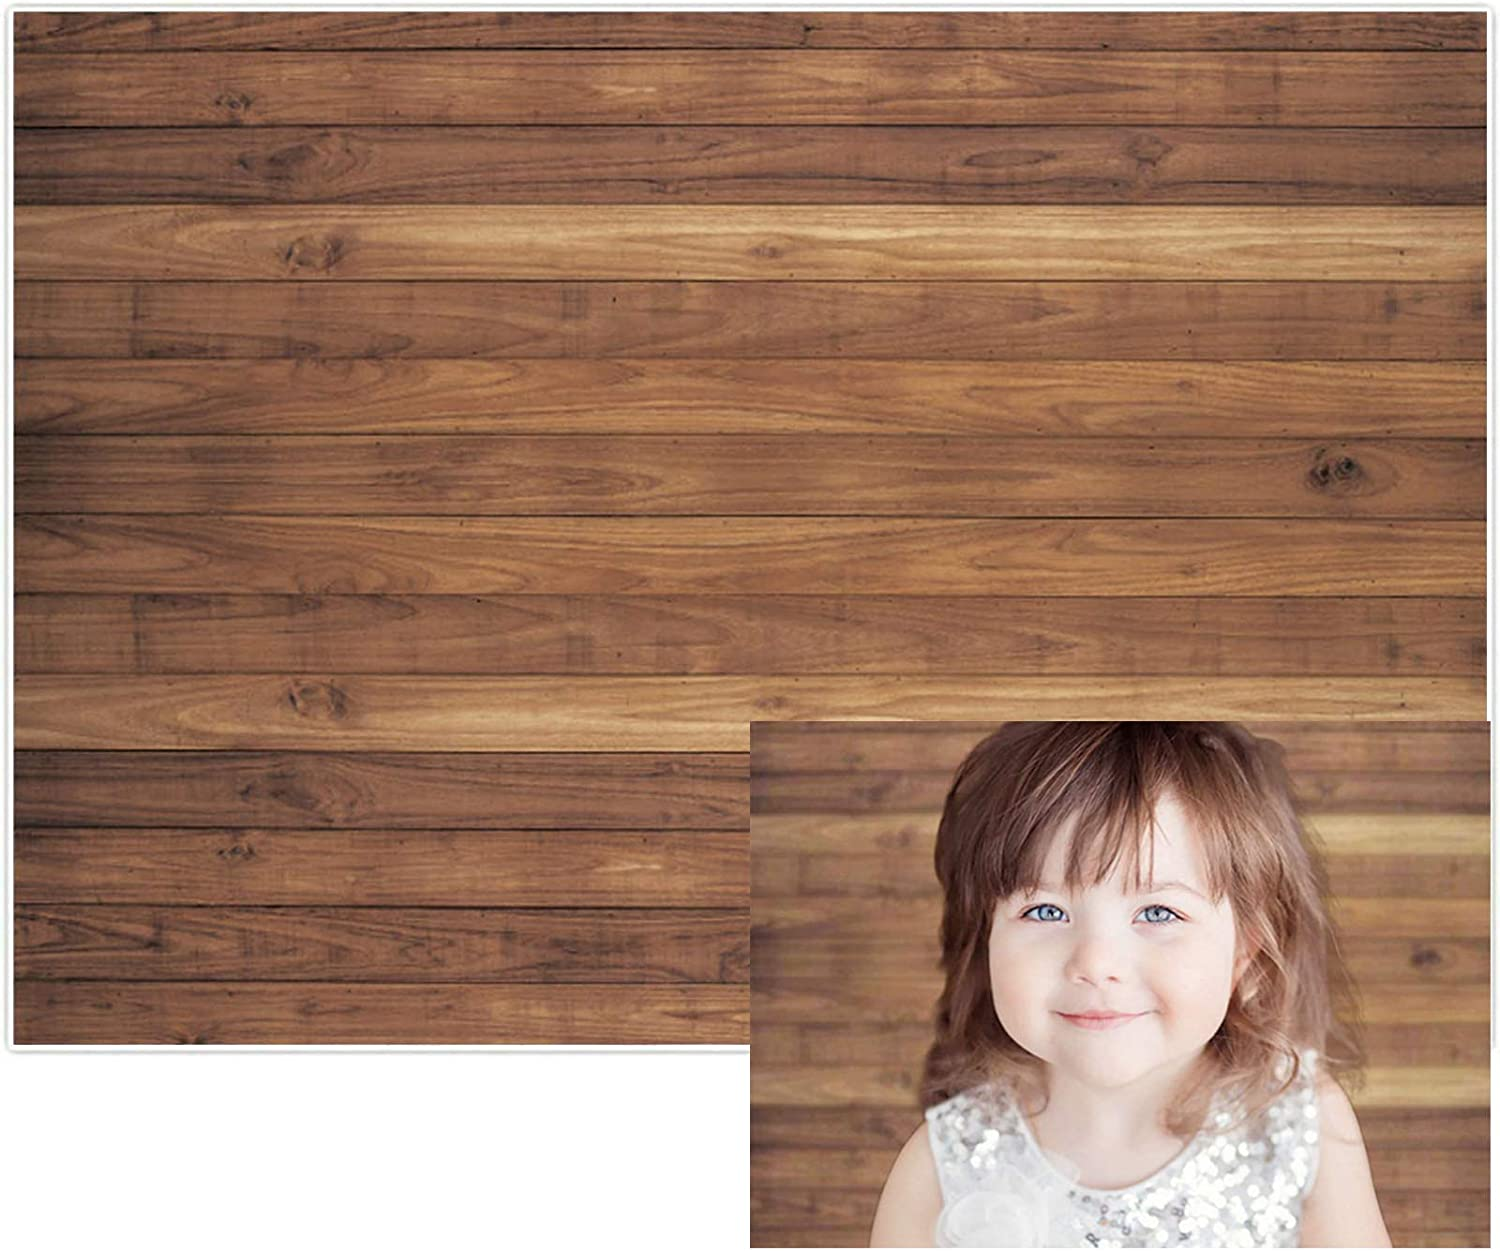 Allenjoy 5x7ft Soft Fabric Abstract Brown Wall with Wood Floor Backdrop for Newborn Baby Photography Kids 1st Birthday Cake Smash Photoshoot Retro Portrait Photo Background Photographer Props